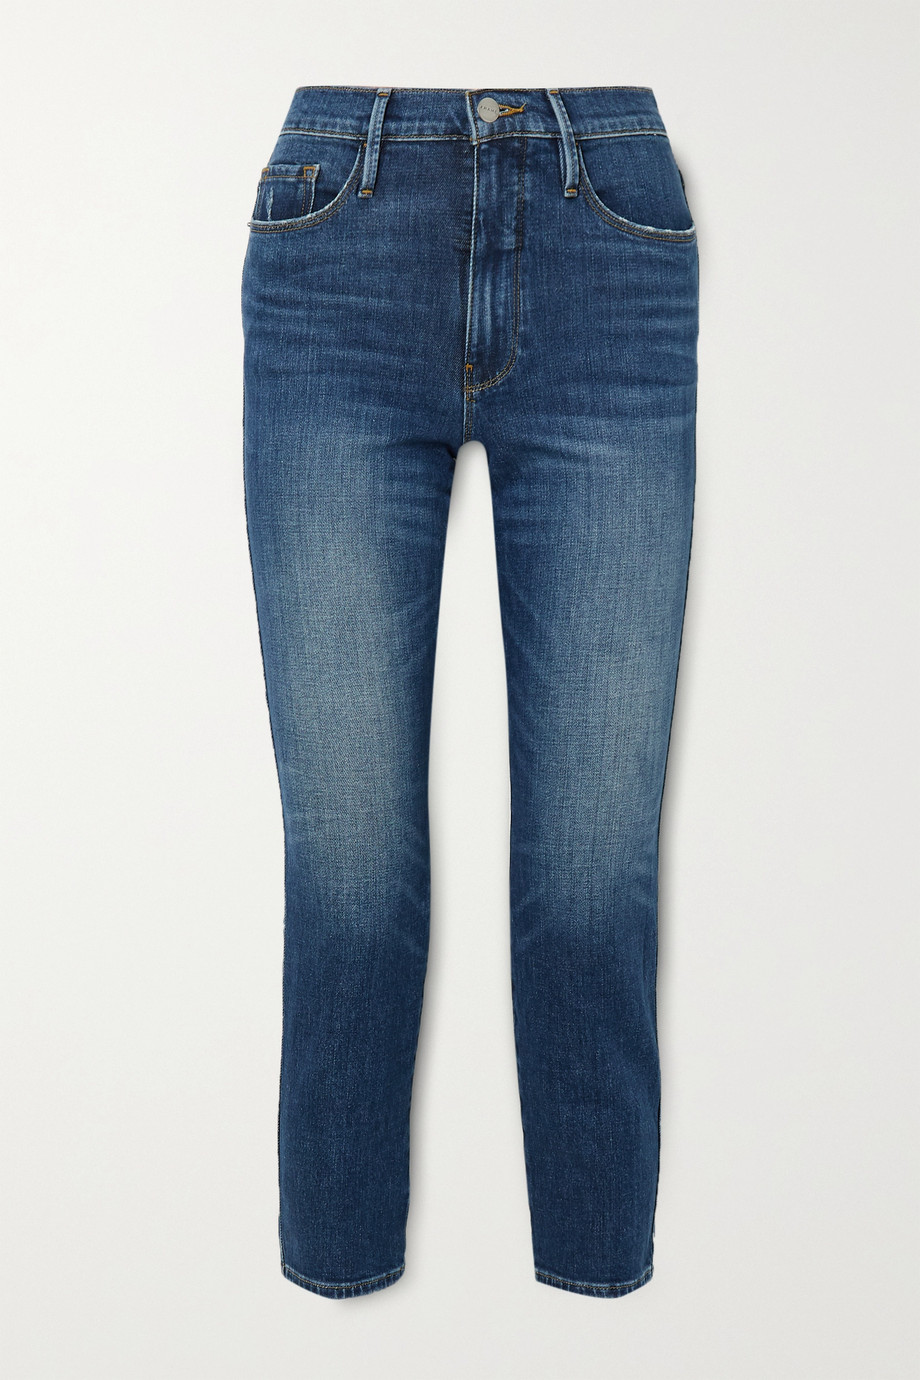 FRAME Le Pixie Sylvie cropped high-rise straight-leg jeans